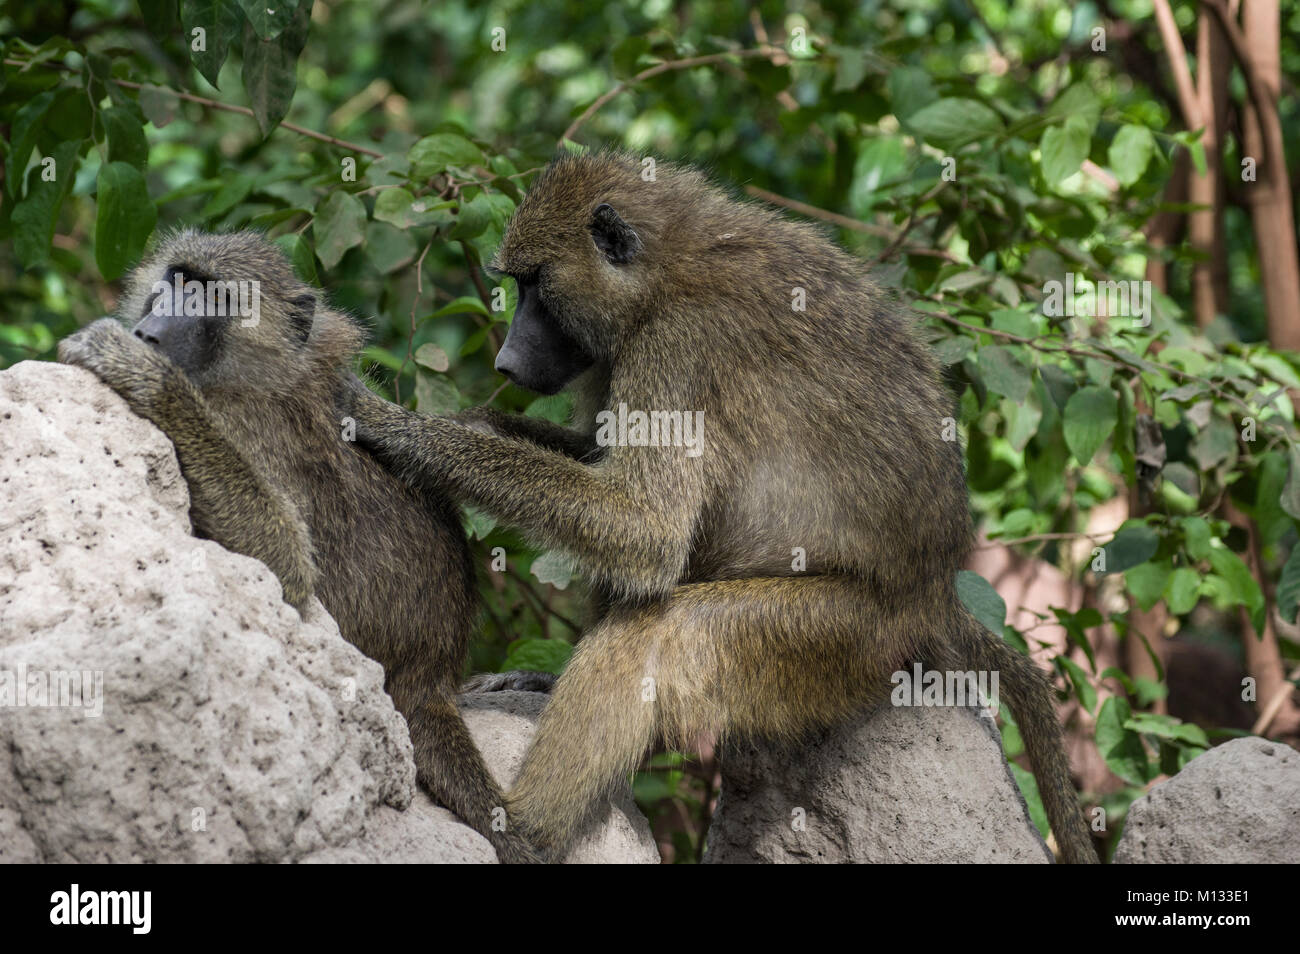 One baboon grooming another on the rocks for fleas or lice in the Serengeti, North Tanzania, Arush, on safari - Stock Image